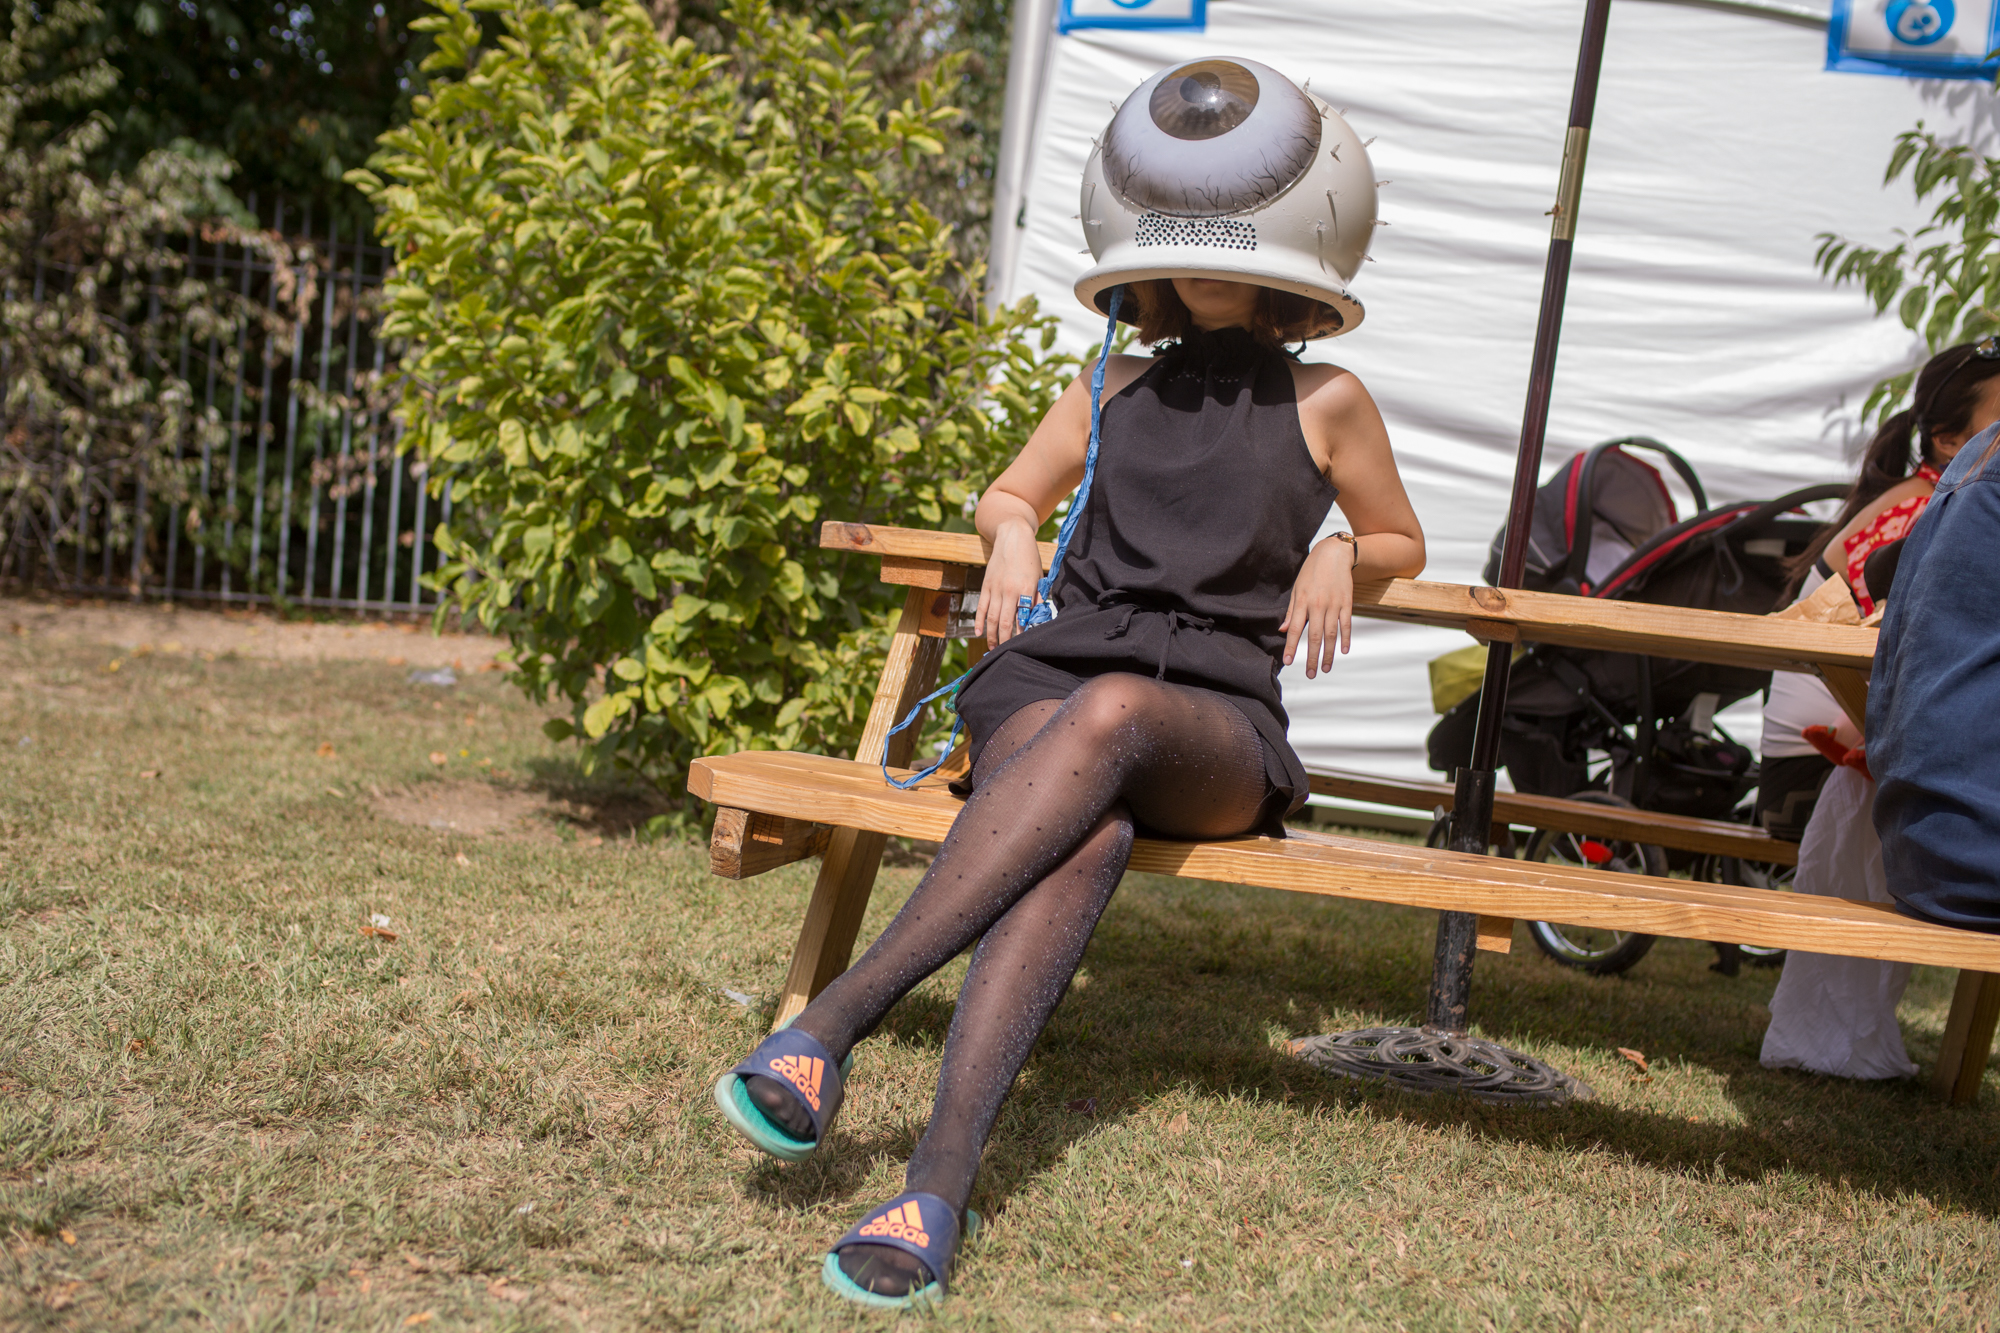 A Snapshot of World Maker Faire: Dancing Dinos and Eyeball Fashionistas